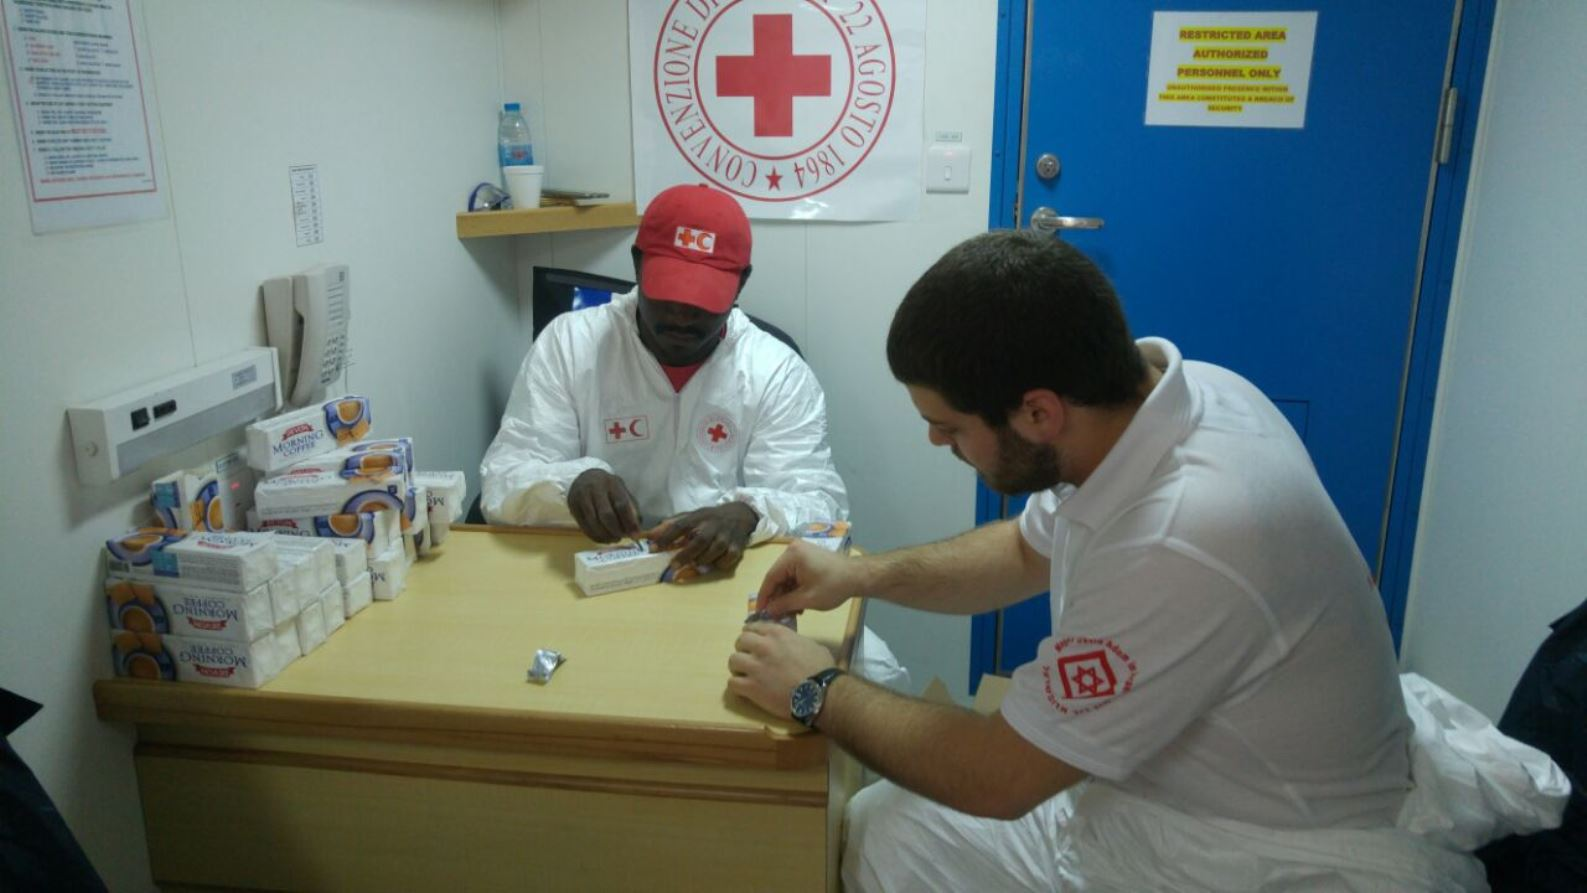 Izzy Papa, right, working with a Red Cross/Red Crescent volunteer. Photo courtesy of MDA